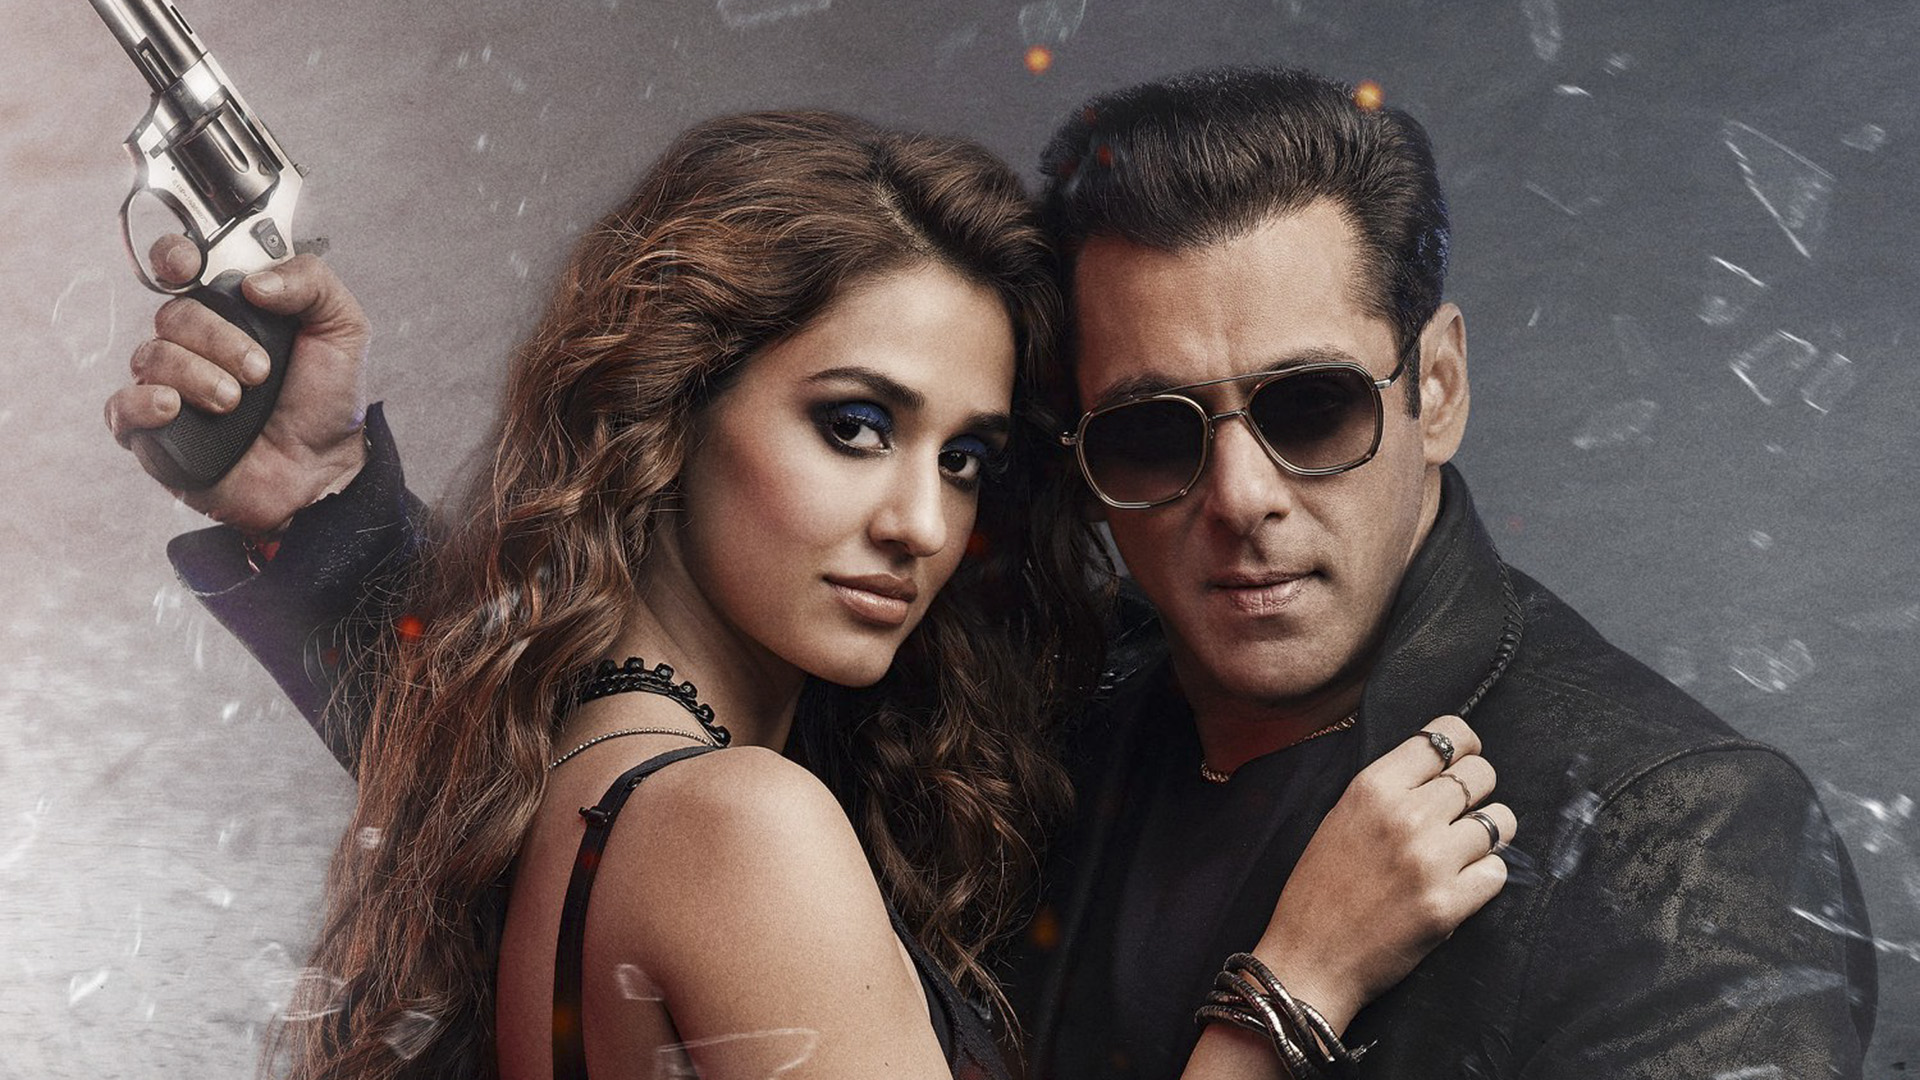 Bollywood Movie Sparks Piracy Concerns In India's Streaming Industry